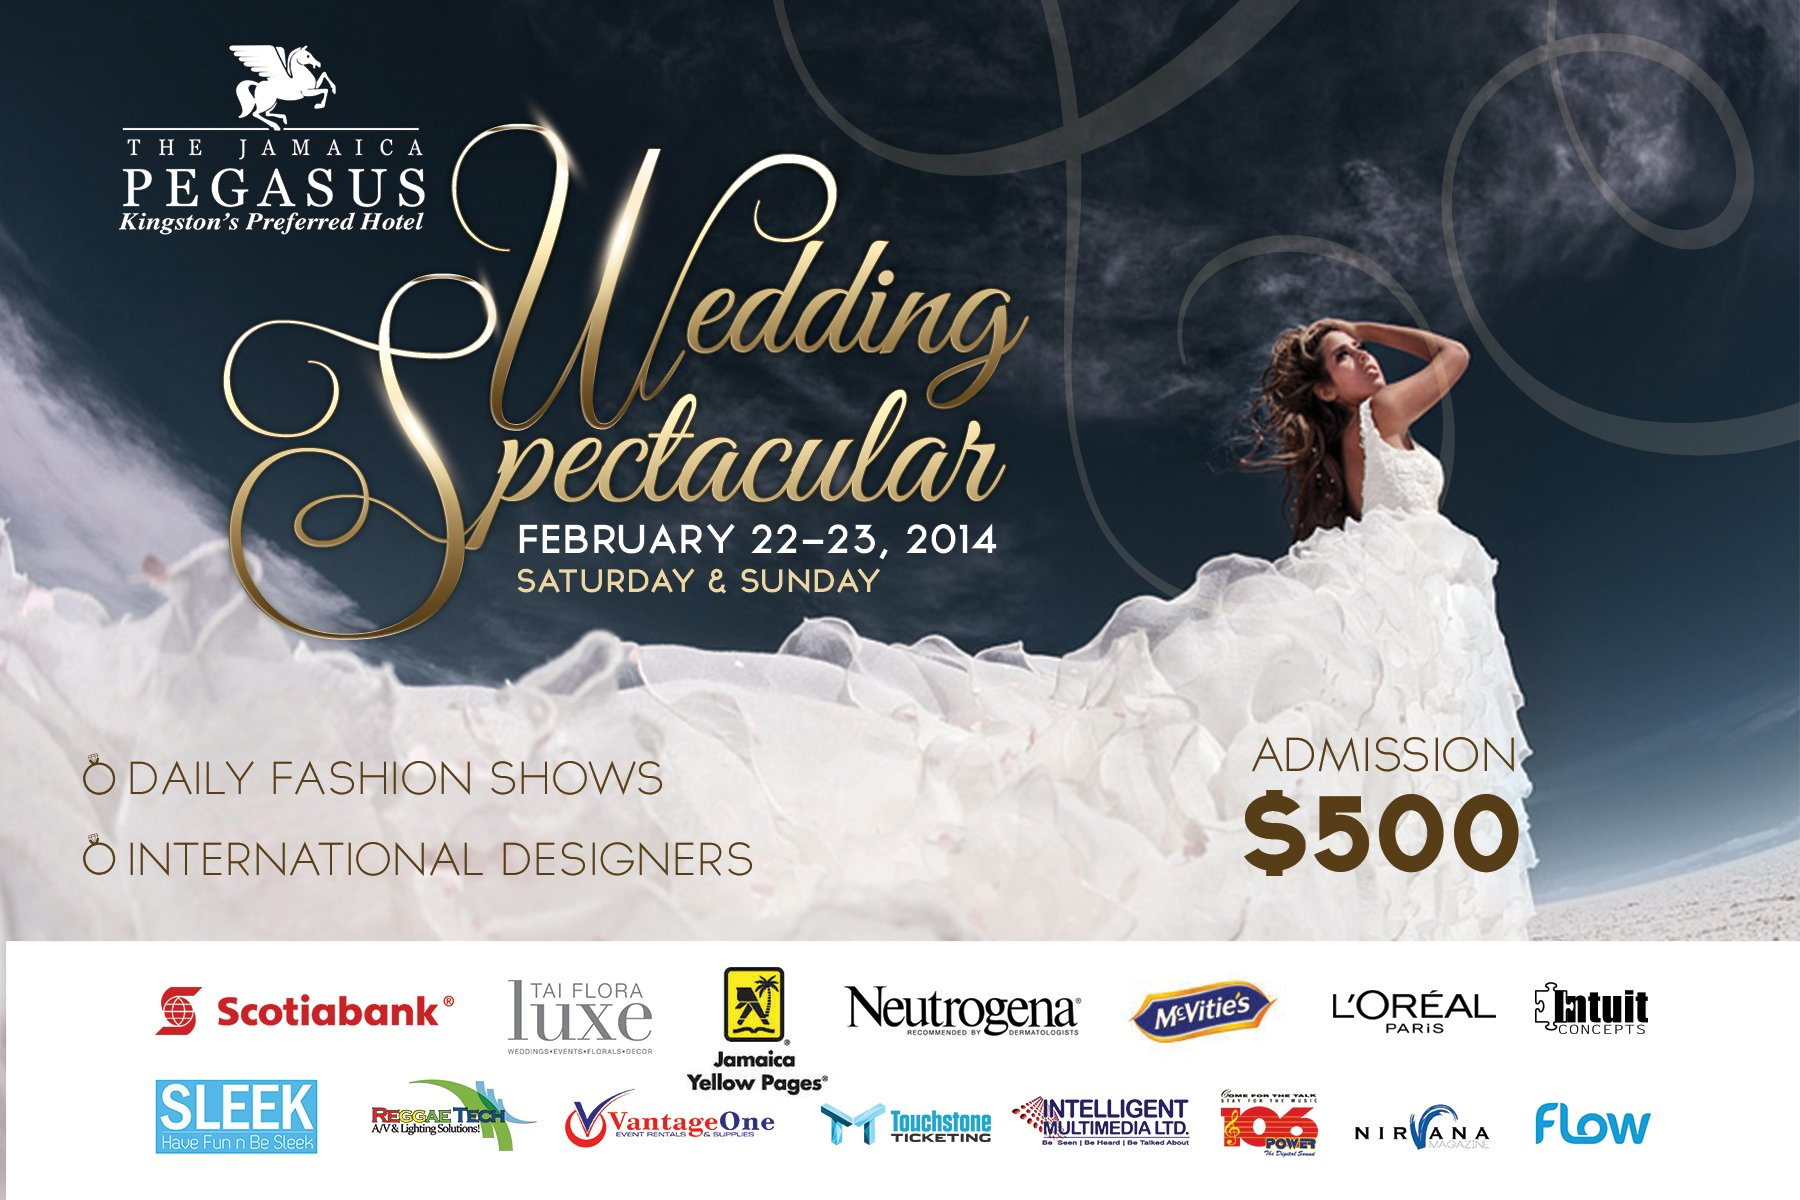 Wedding Spectacular 2014